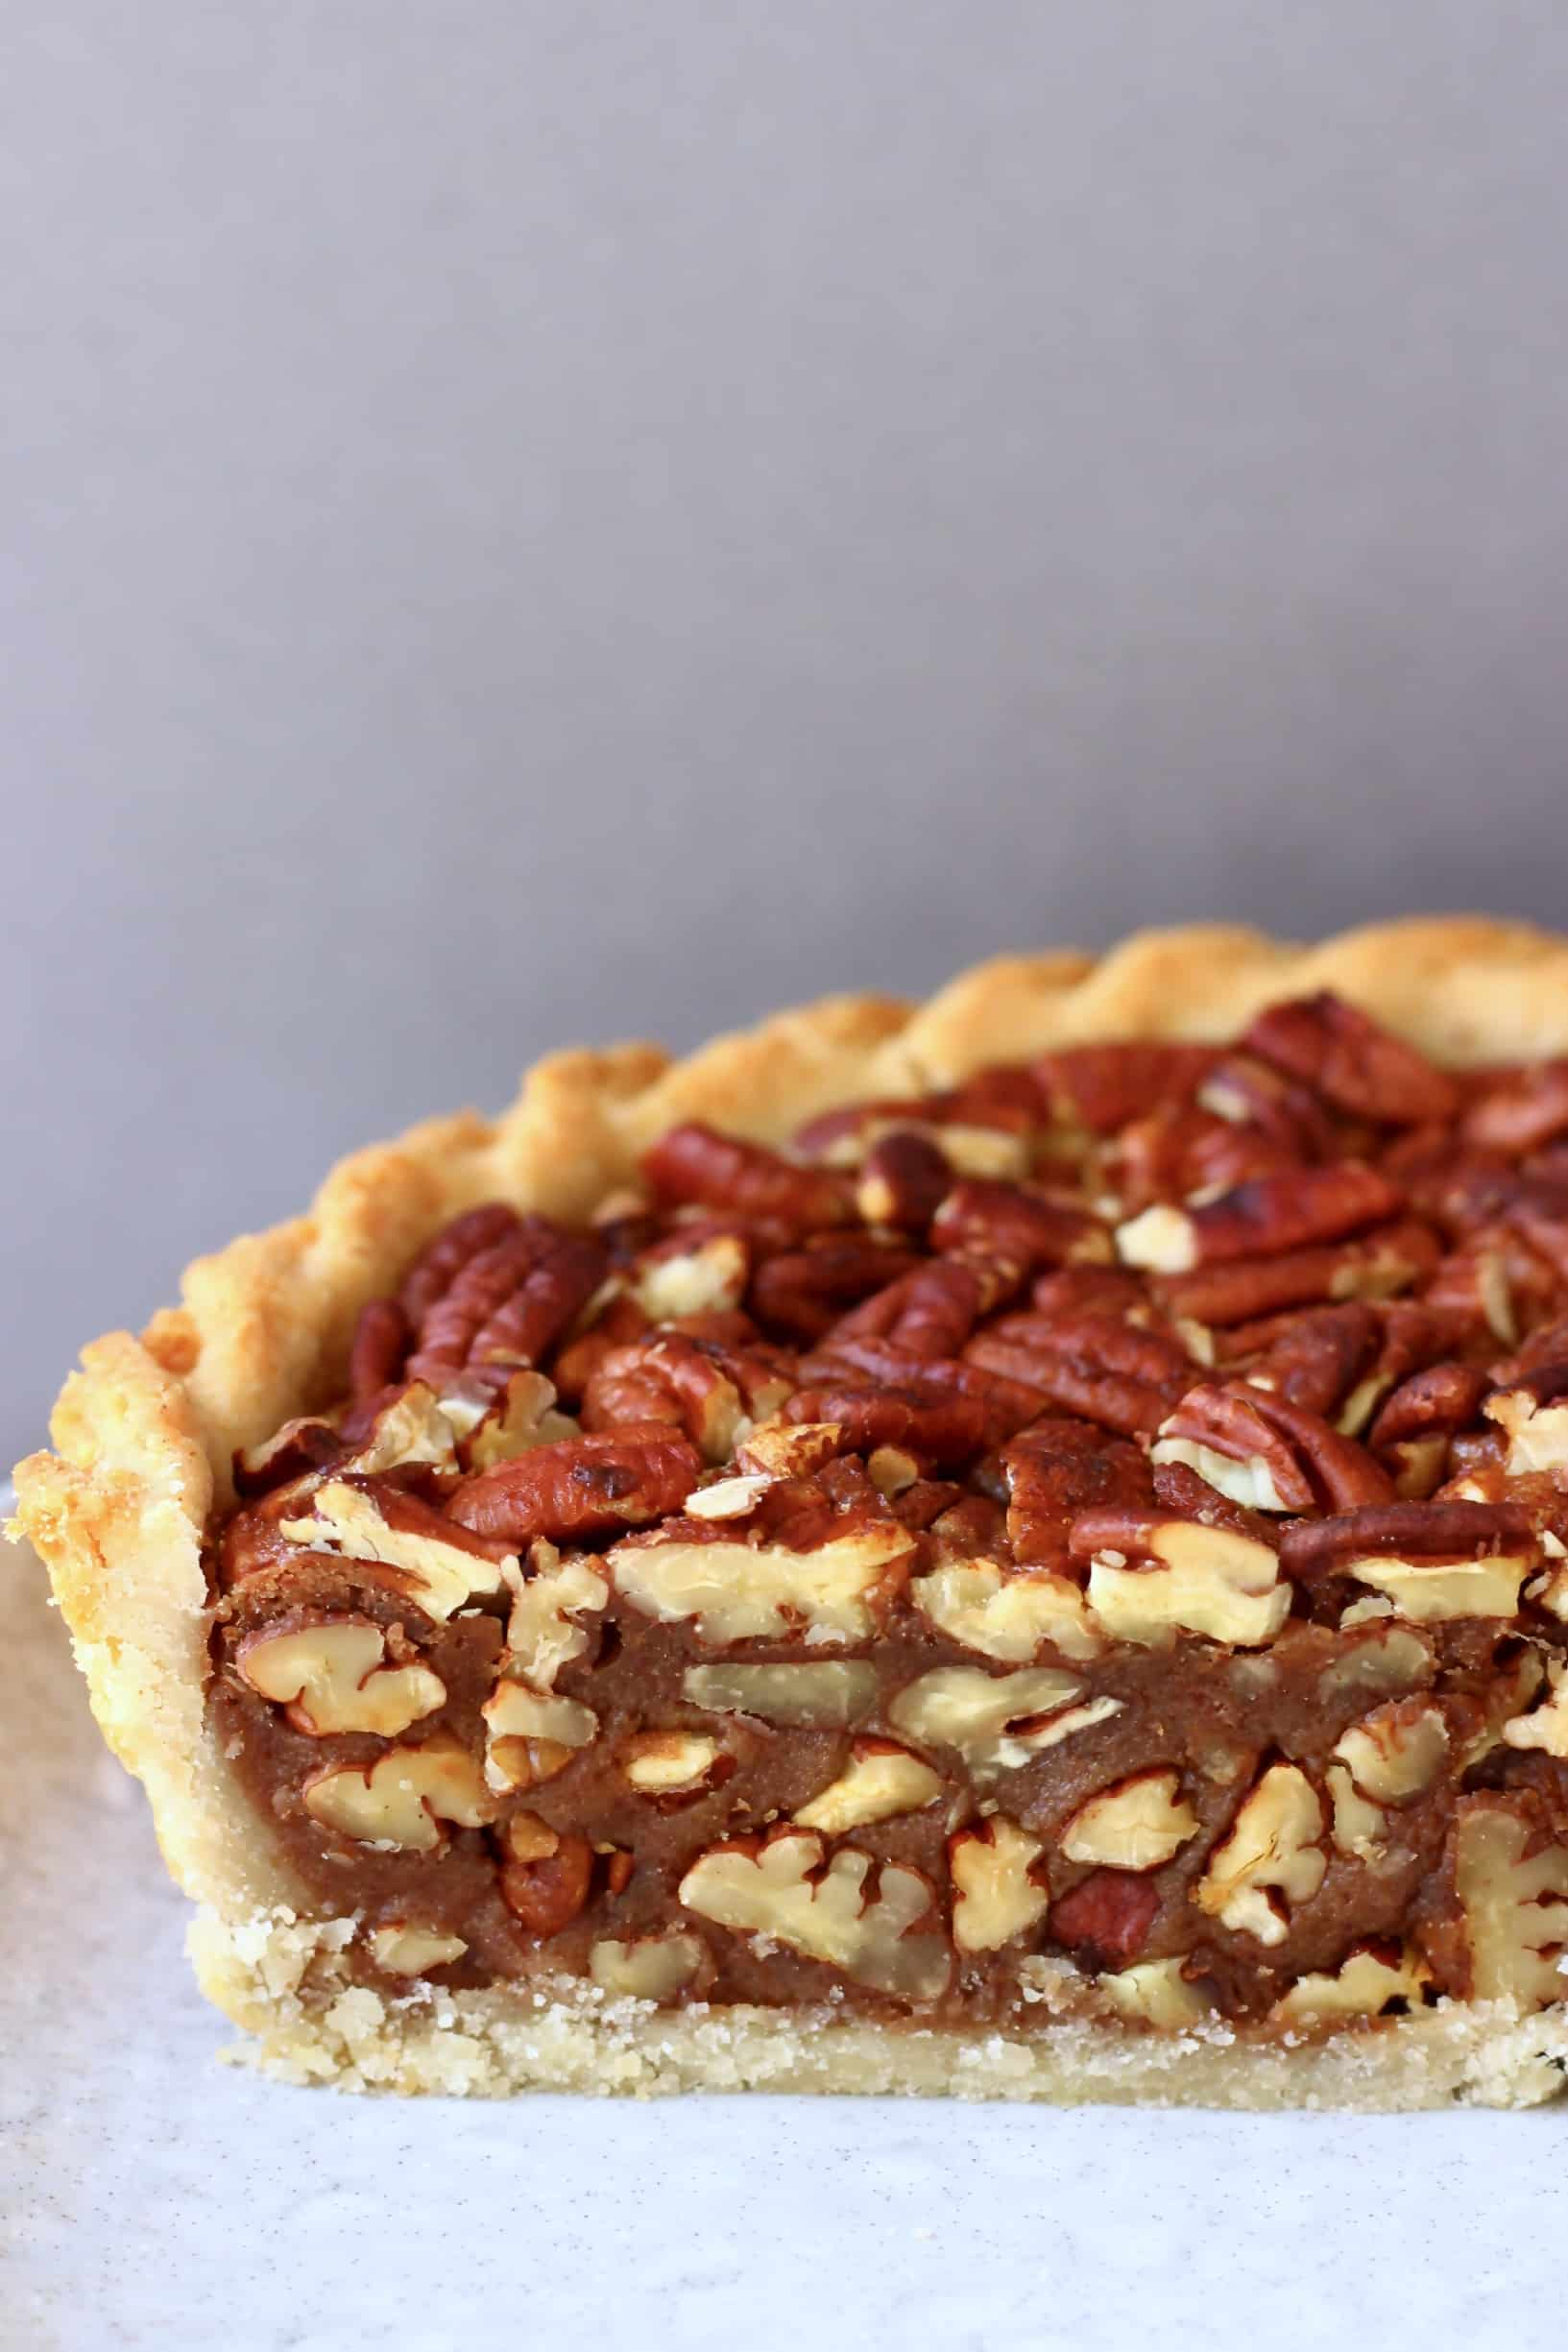 A sliced vegan pecan pie topped with pecan nuts